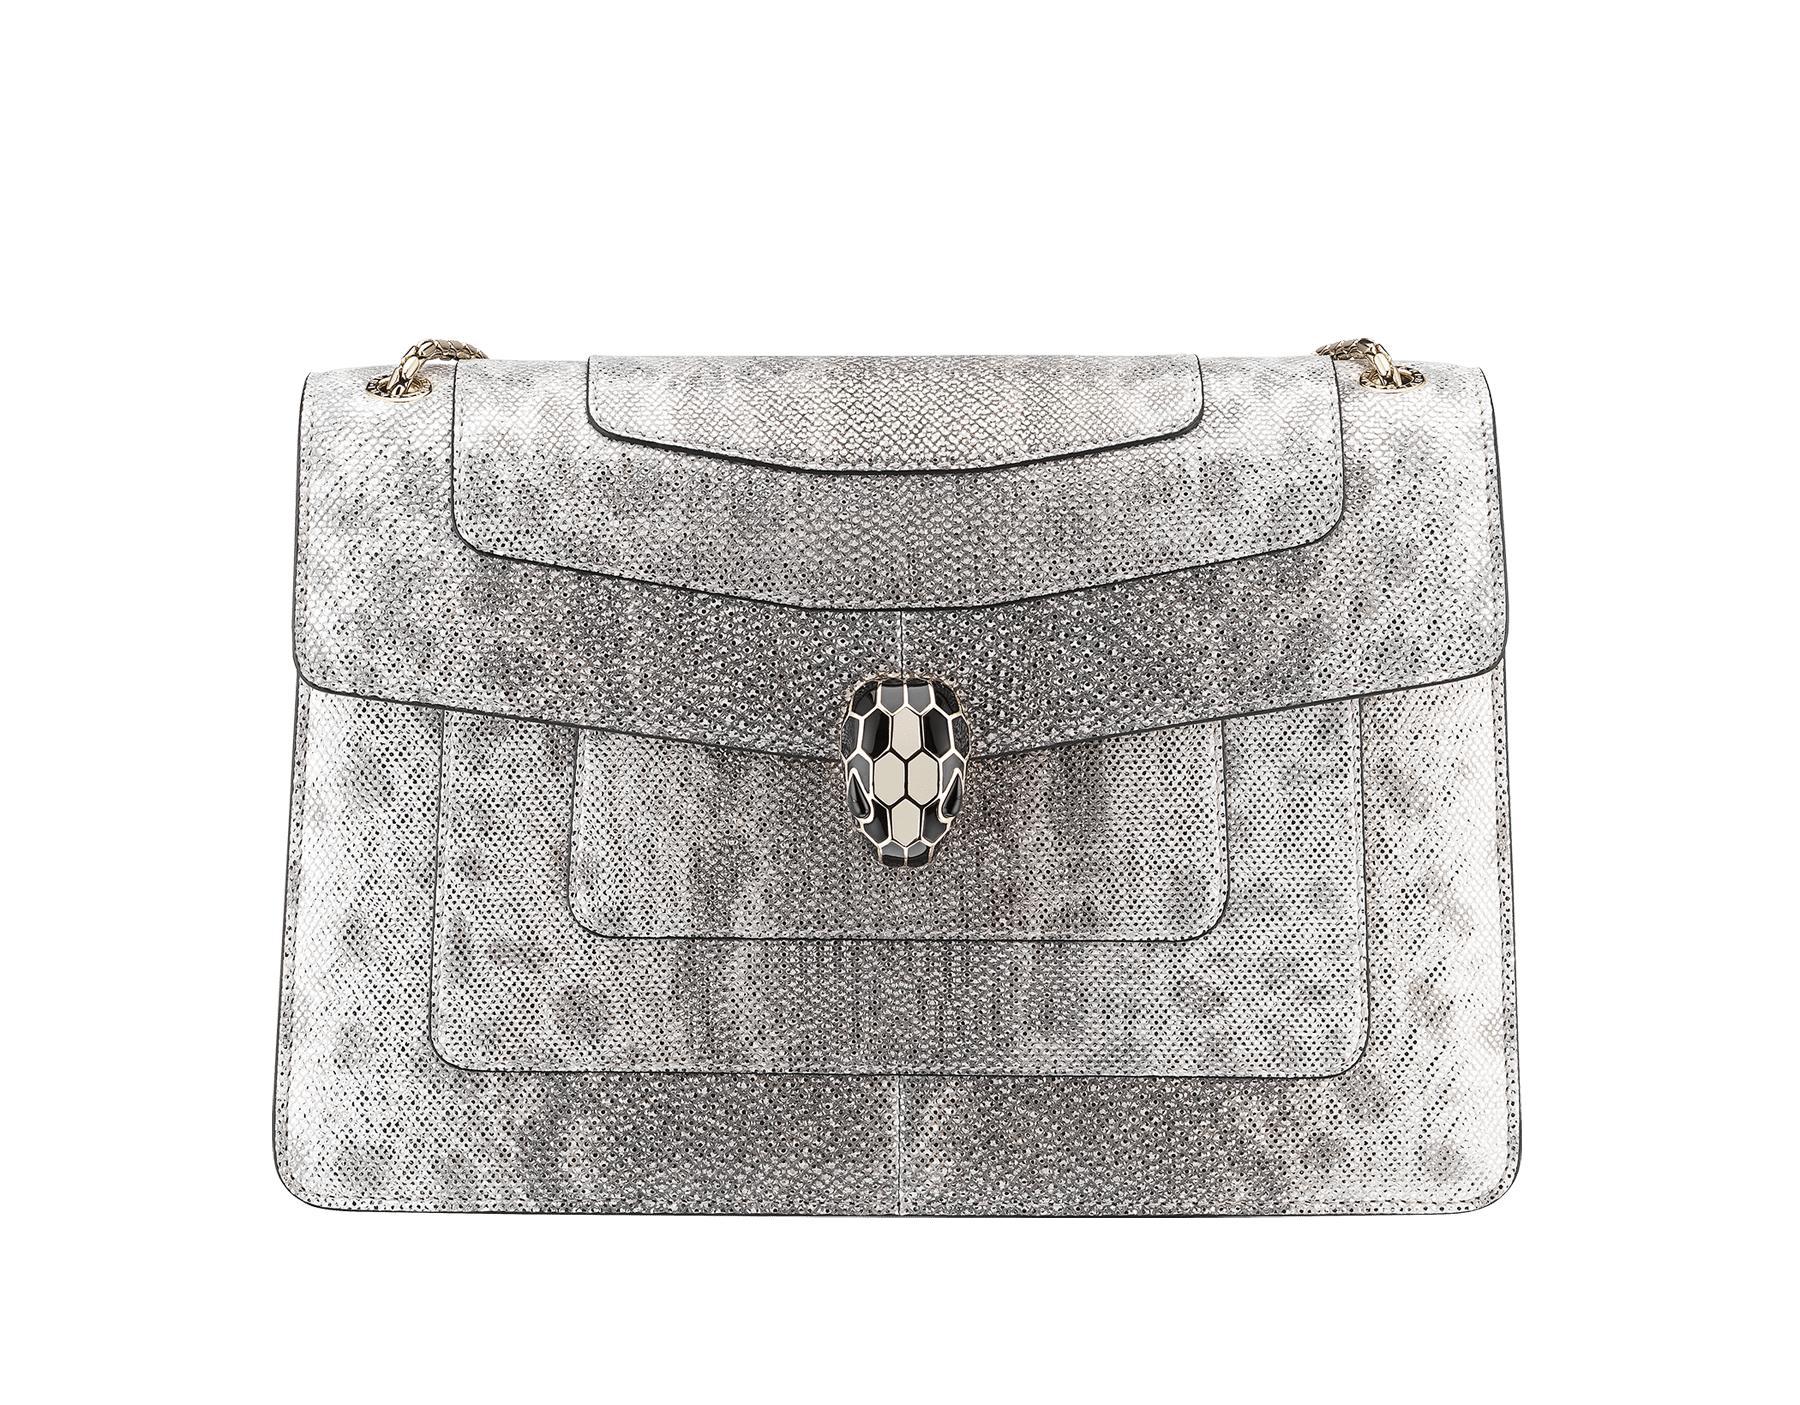 """Serpenti Forever"" shoulder bag in white agate metallic karung skin. Iconic snakehead closure in light gold plated brass enriched with black and white agate enamel and black onyx eyes. 288797 image 1"